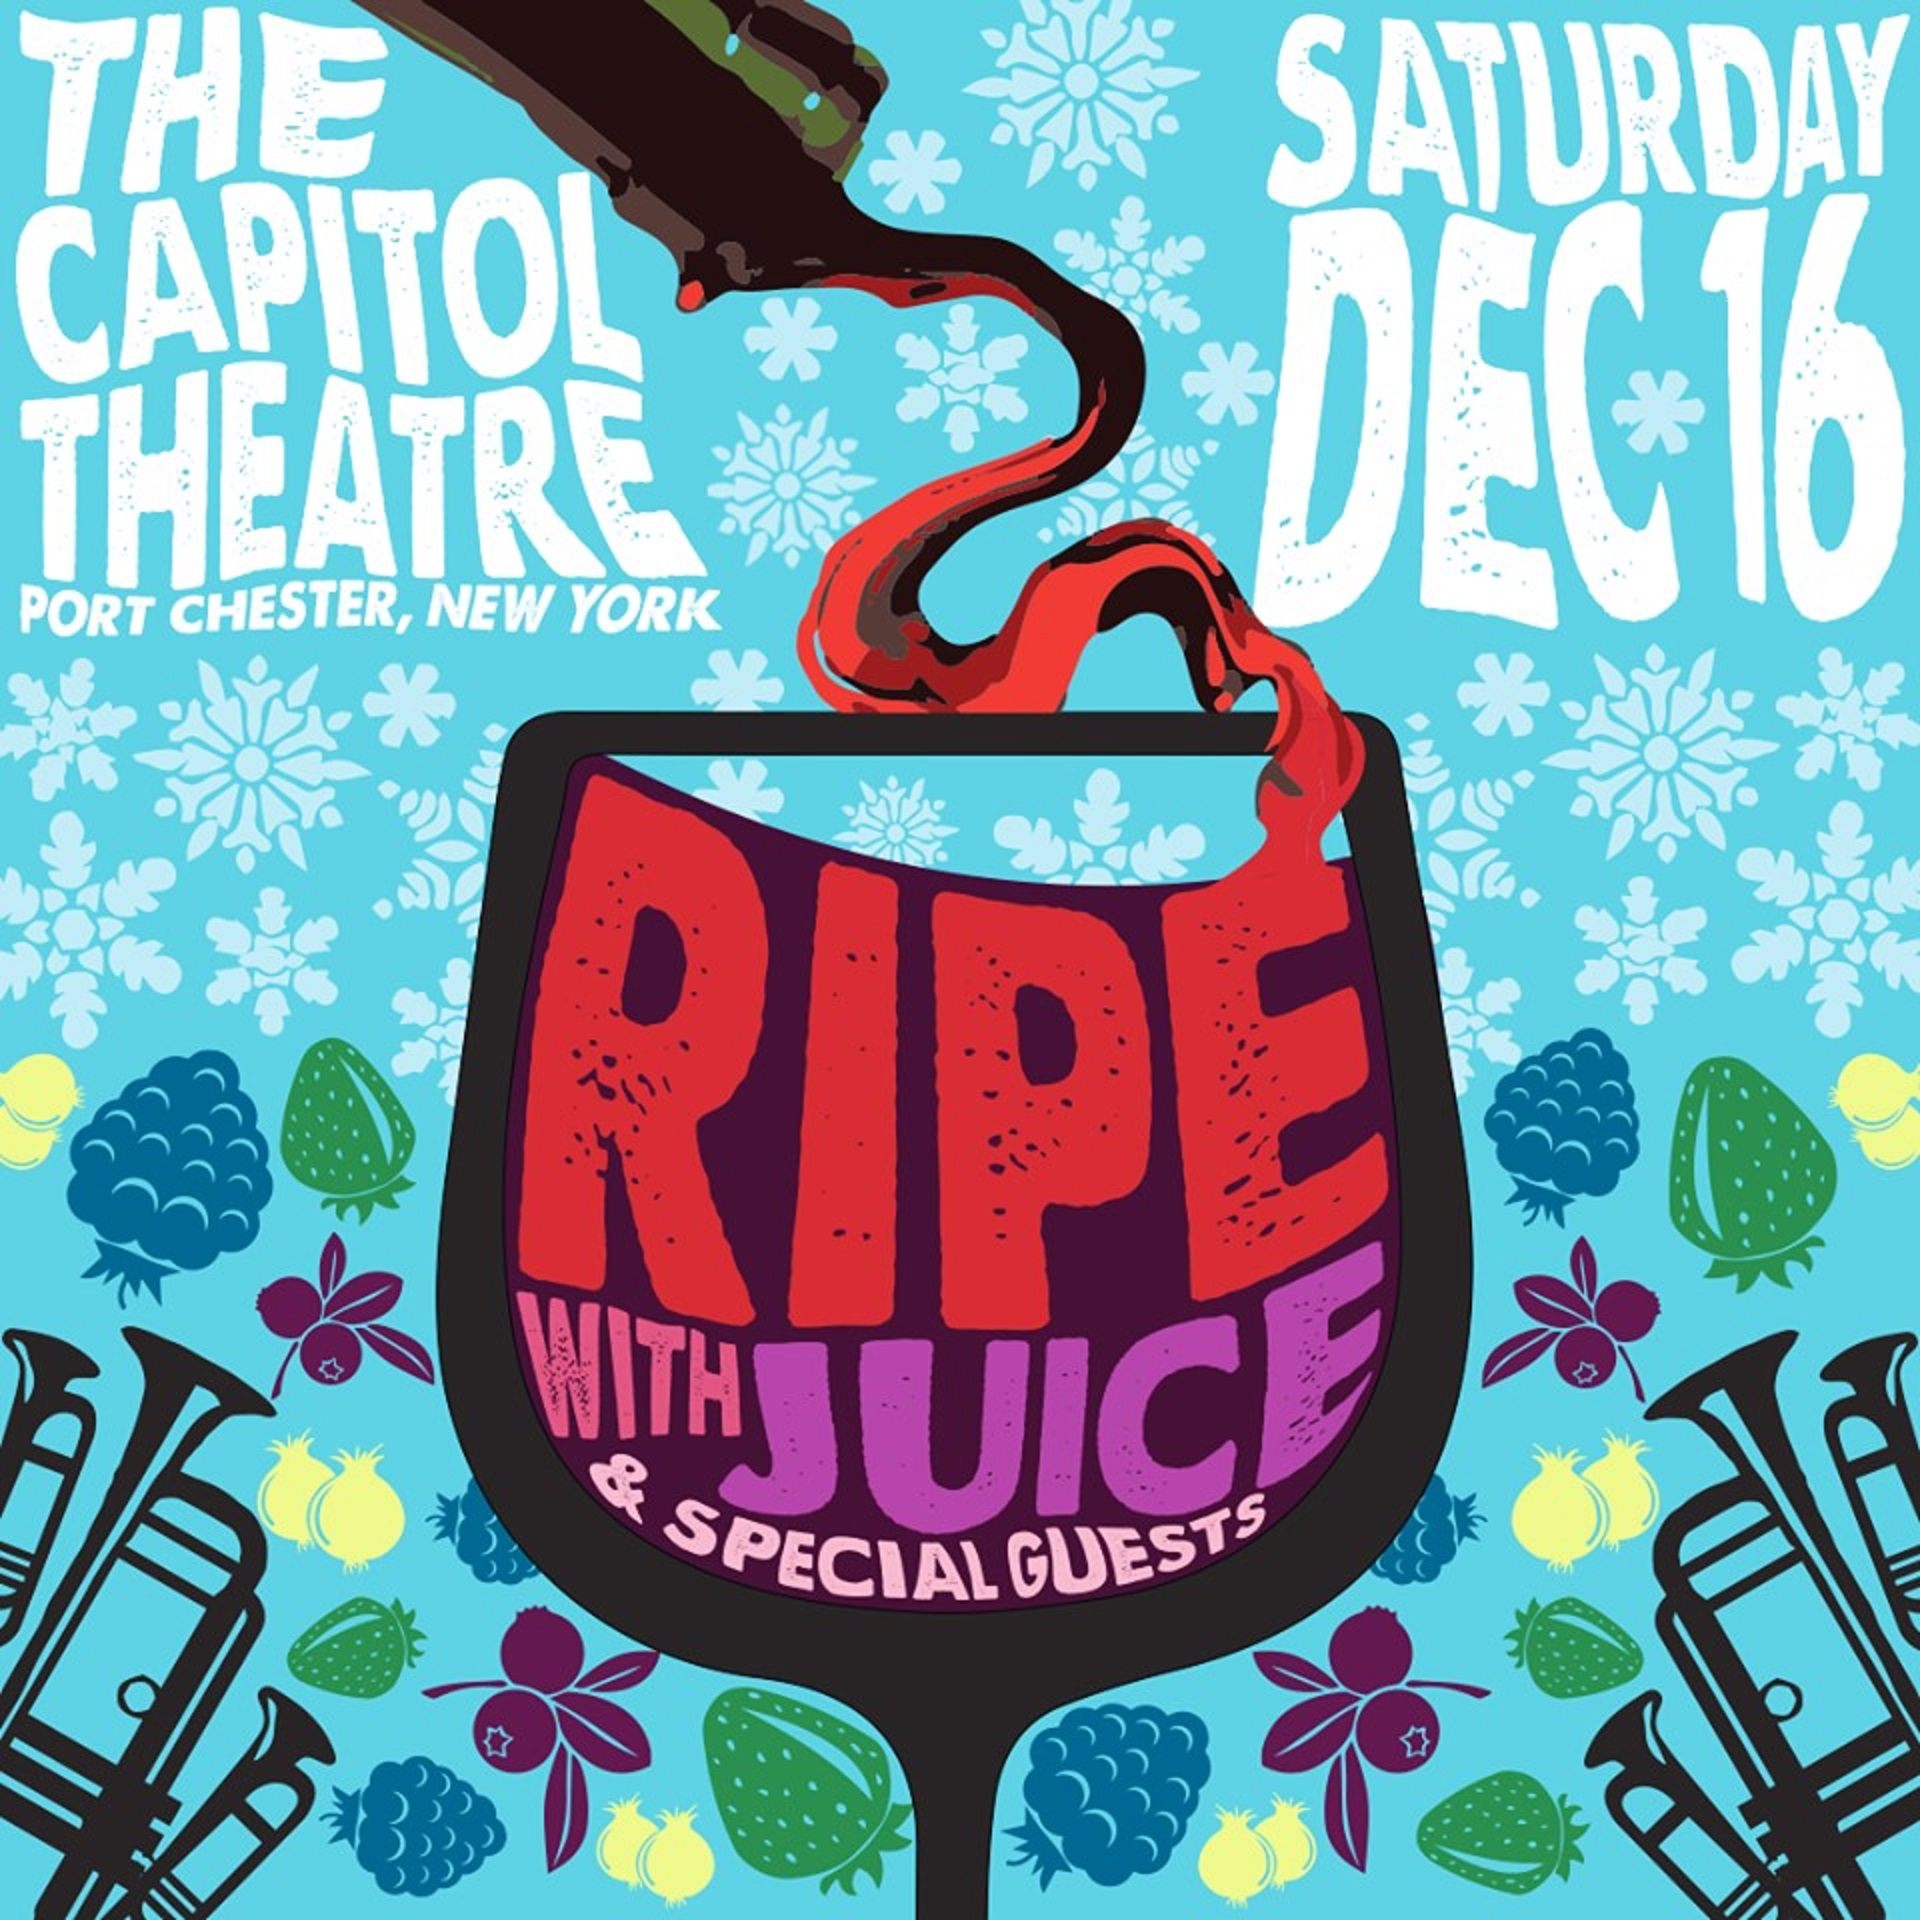 Ripe with Juice and Special Guests at The Capitol Theatre